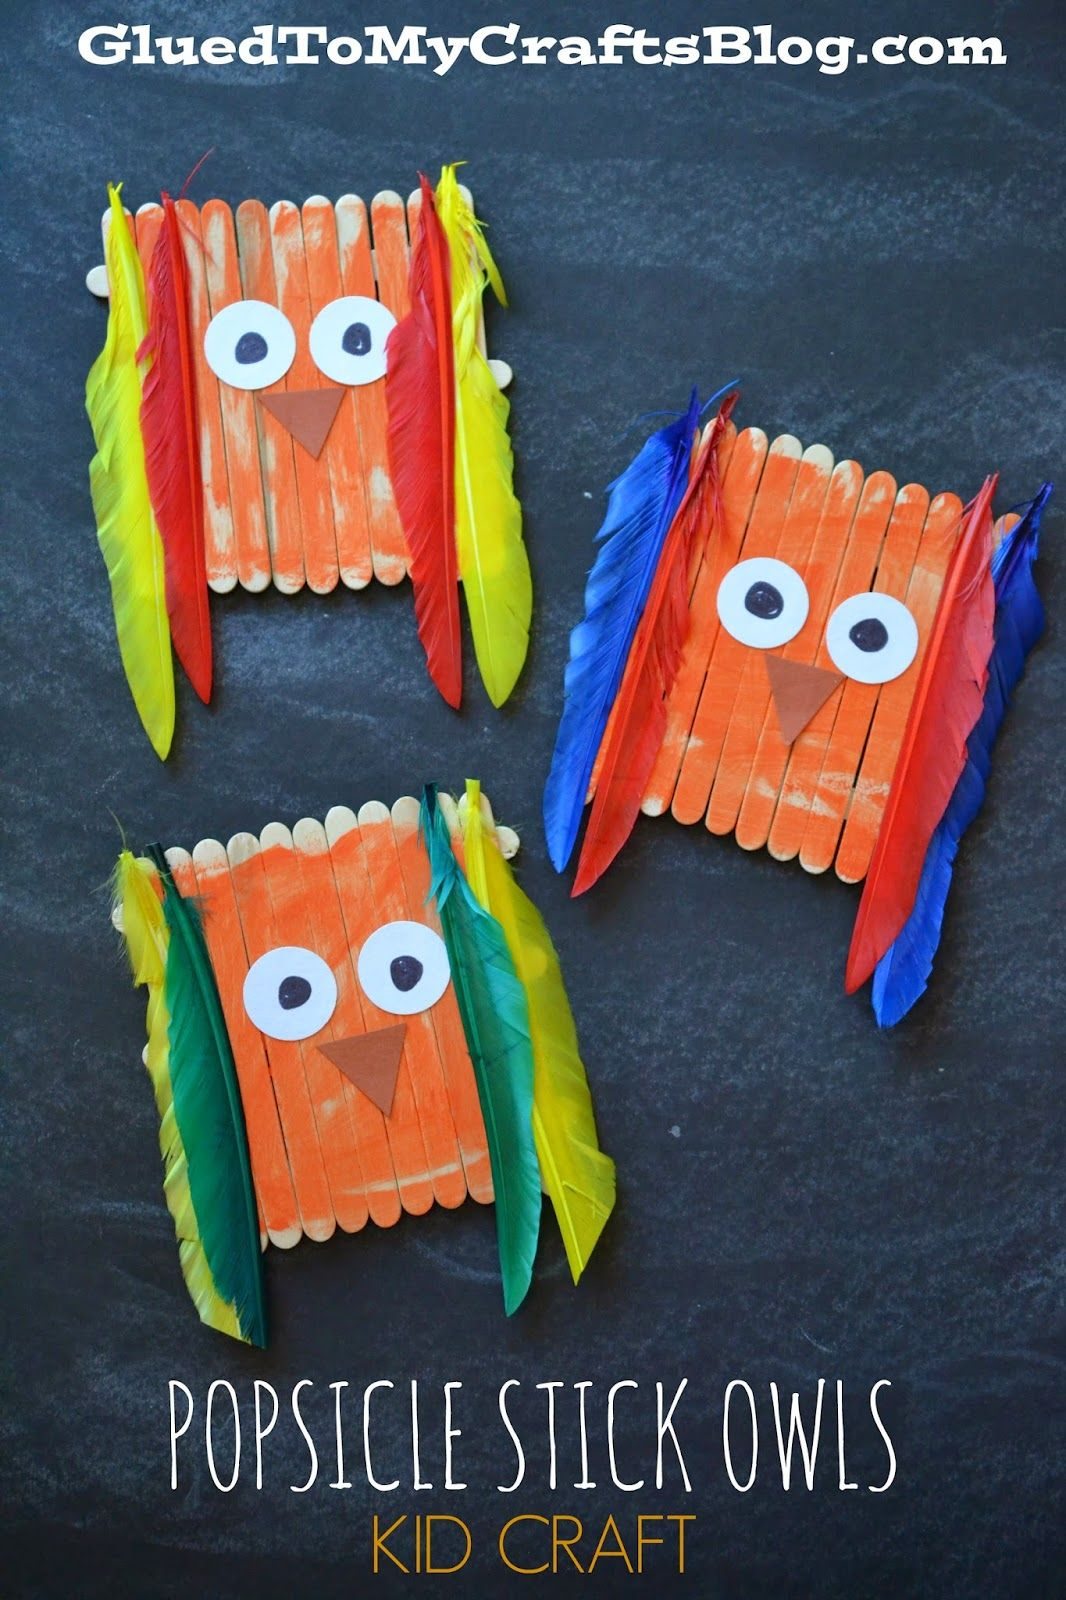 Popsicle Stick Owls Kid Craft Popsicle Stick Crafts